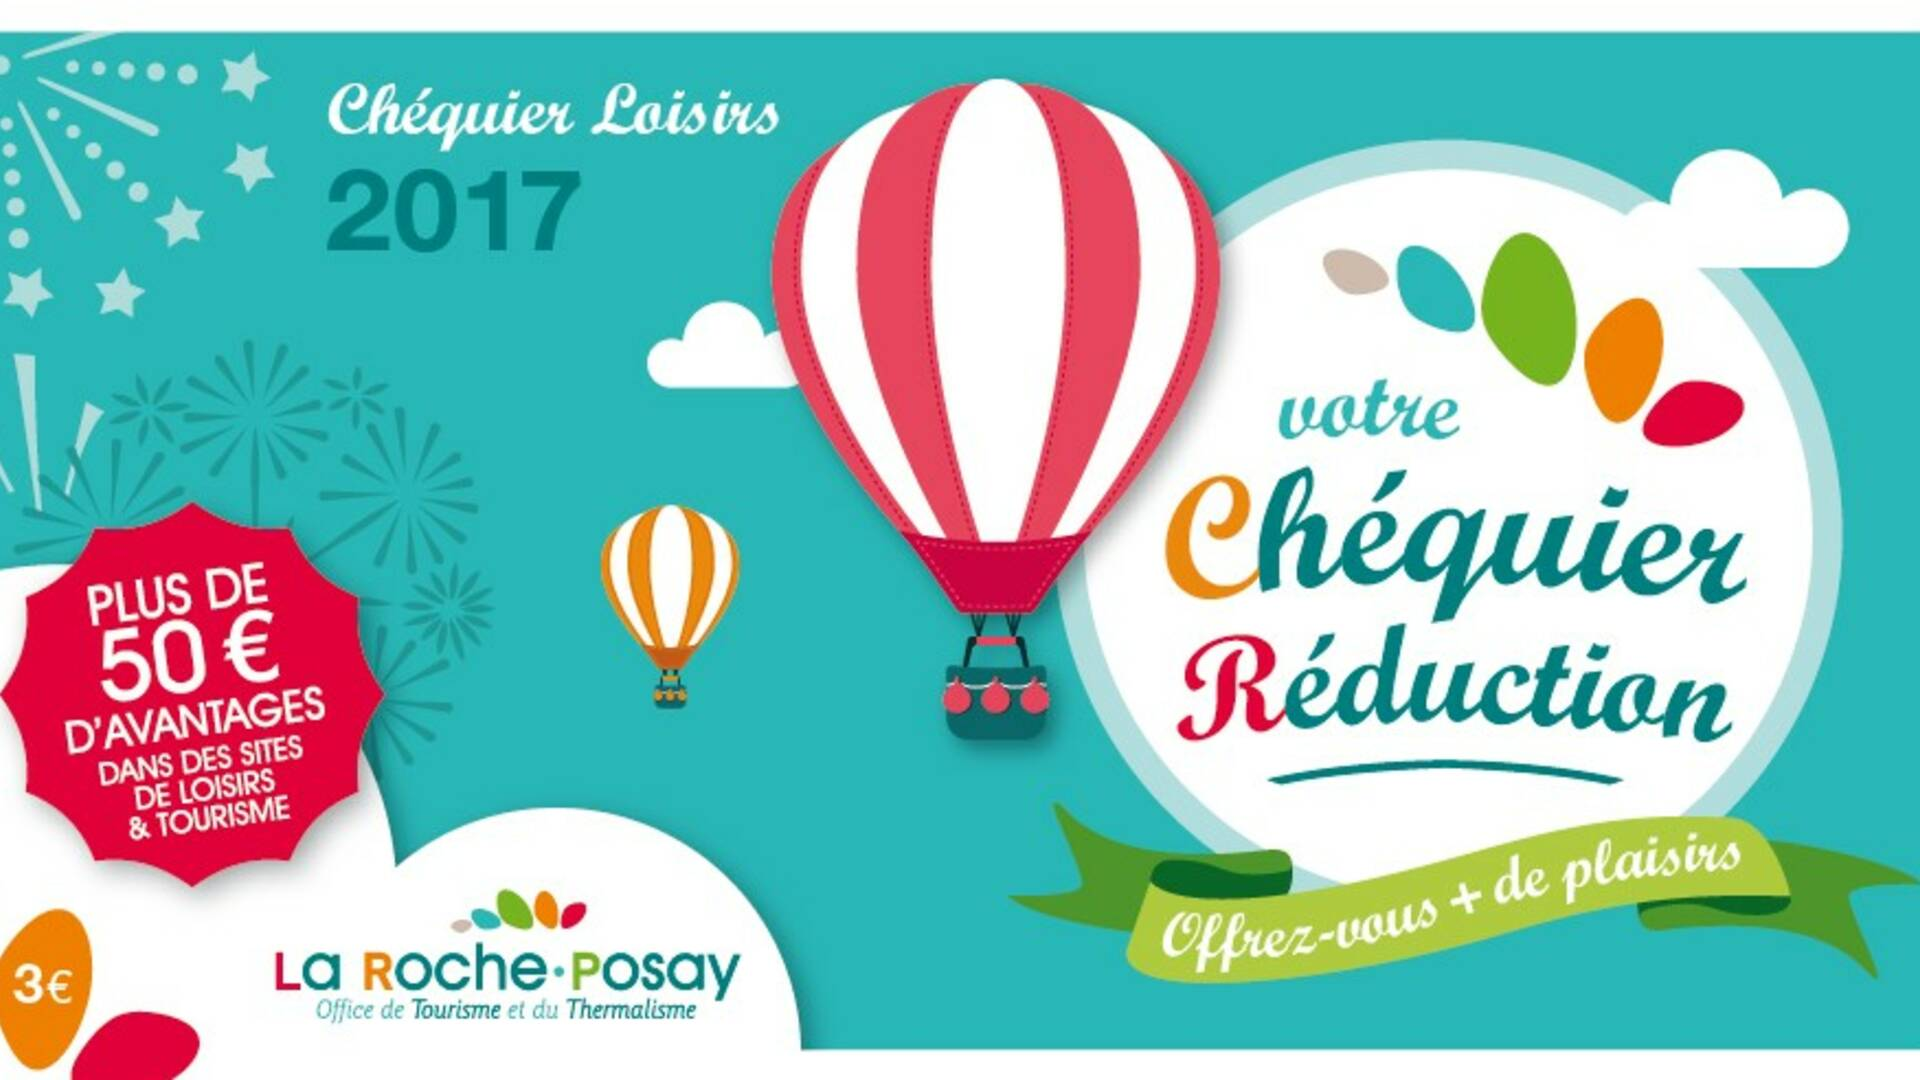 Leisure voucher La Roche-Posay